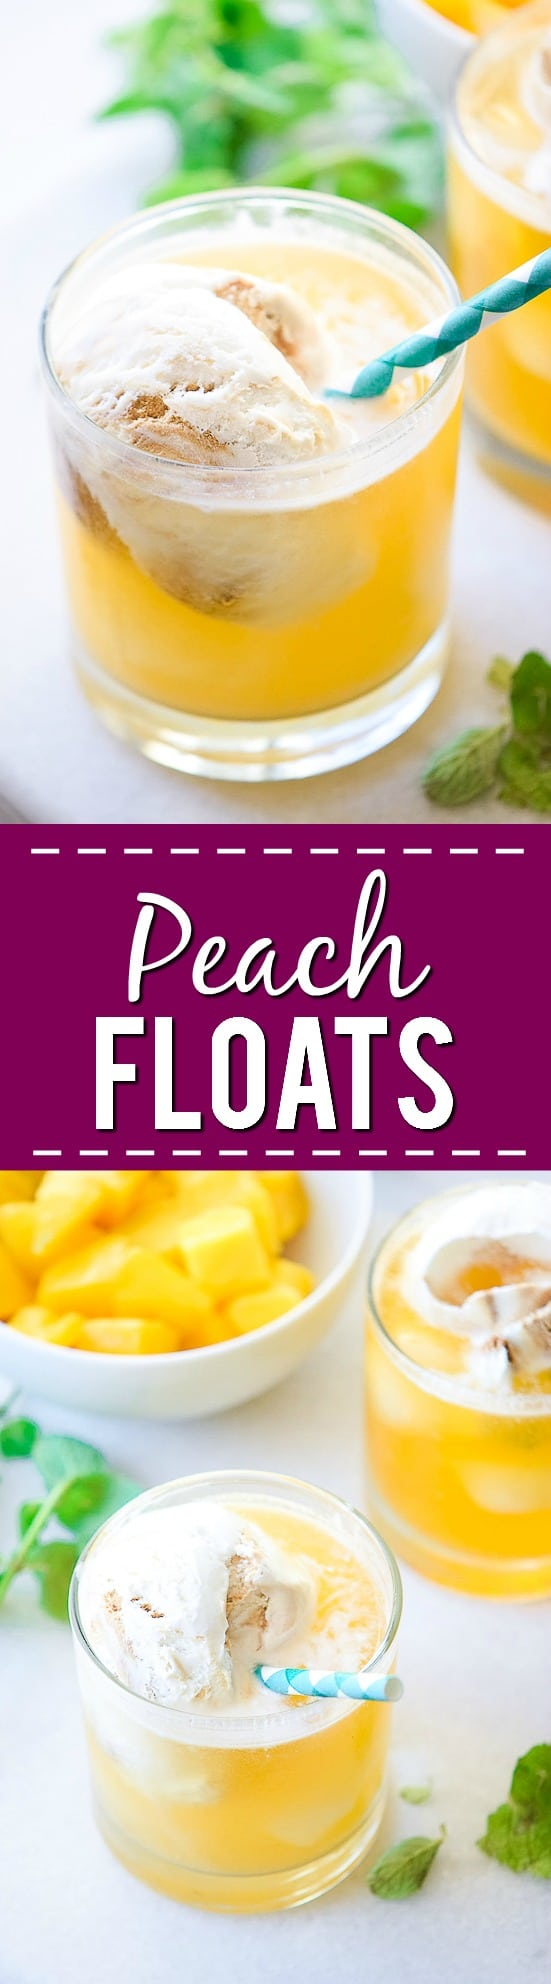 Peach Floats Recipe - Creamy, cool, and refreshing, these Peach Floats are the perfect tangy and sweet drink! Delicious for Summer and pretty for parties.   Makes a non-alcoholic drink for kids or a refreshing Summer cocktail.